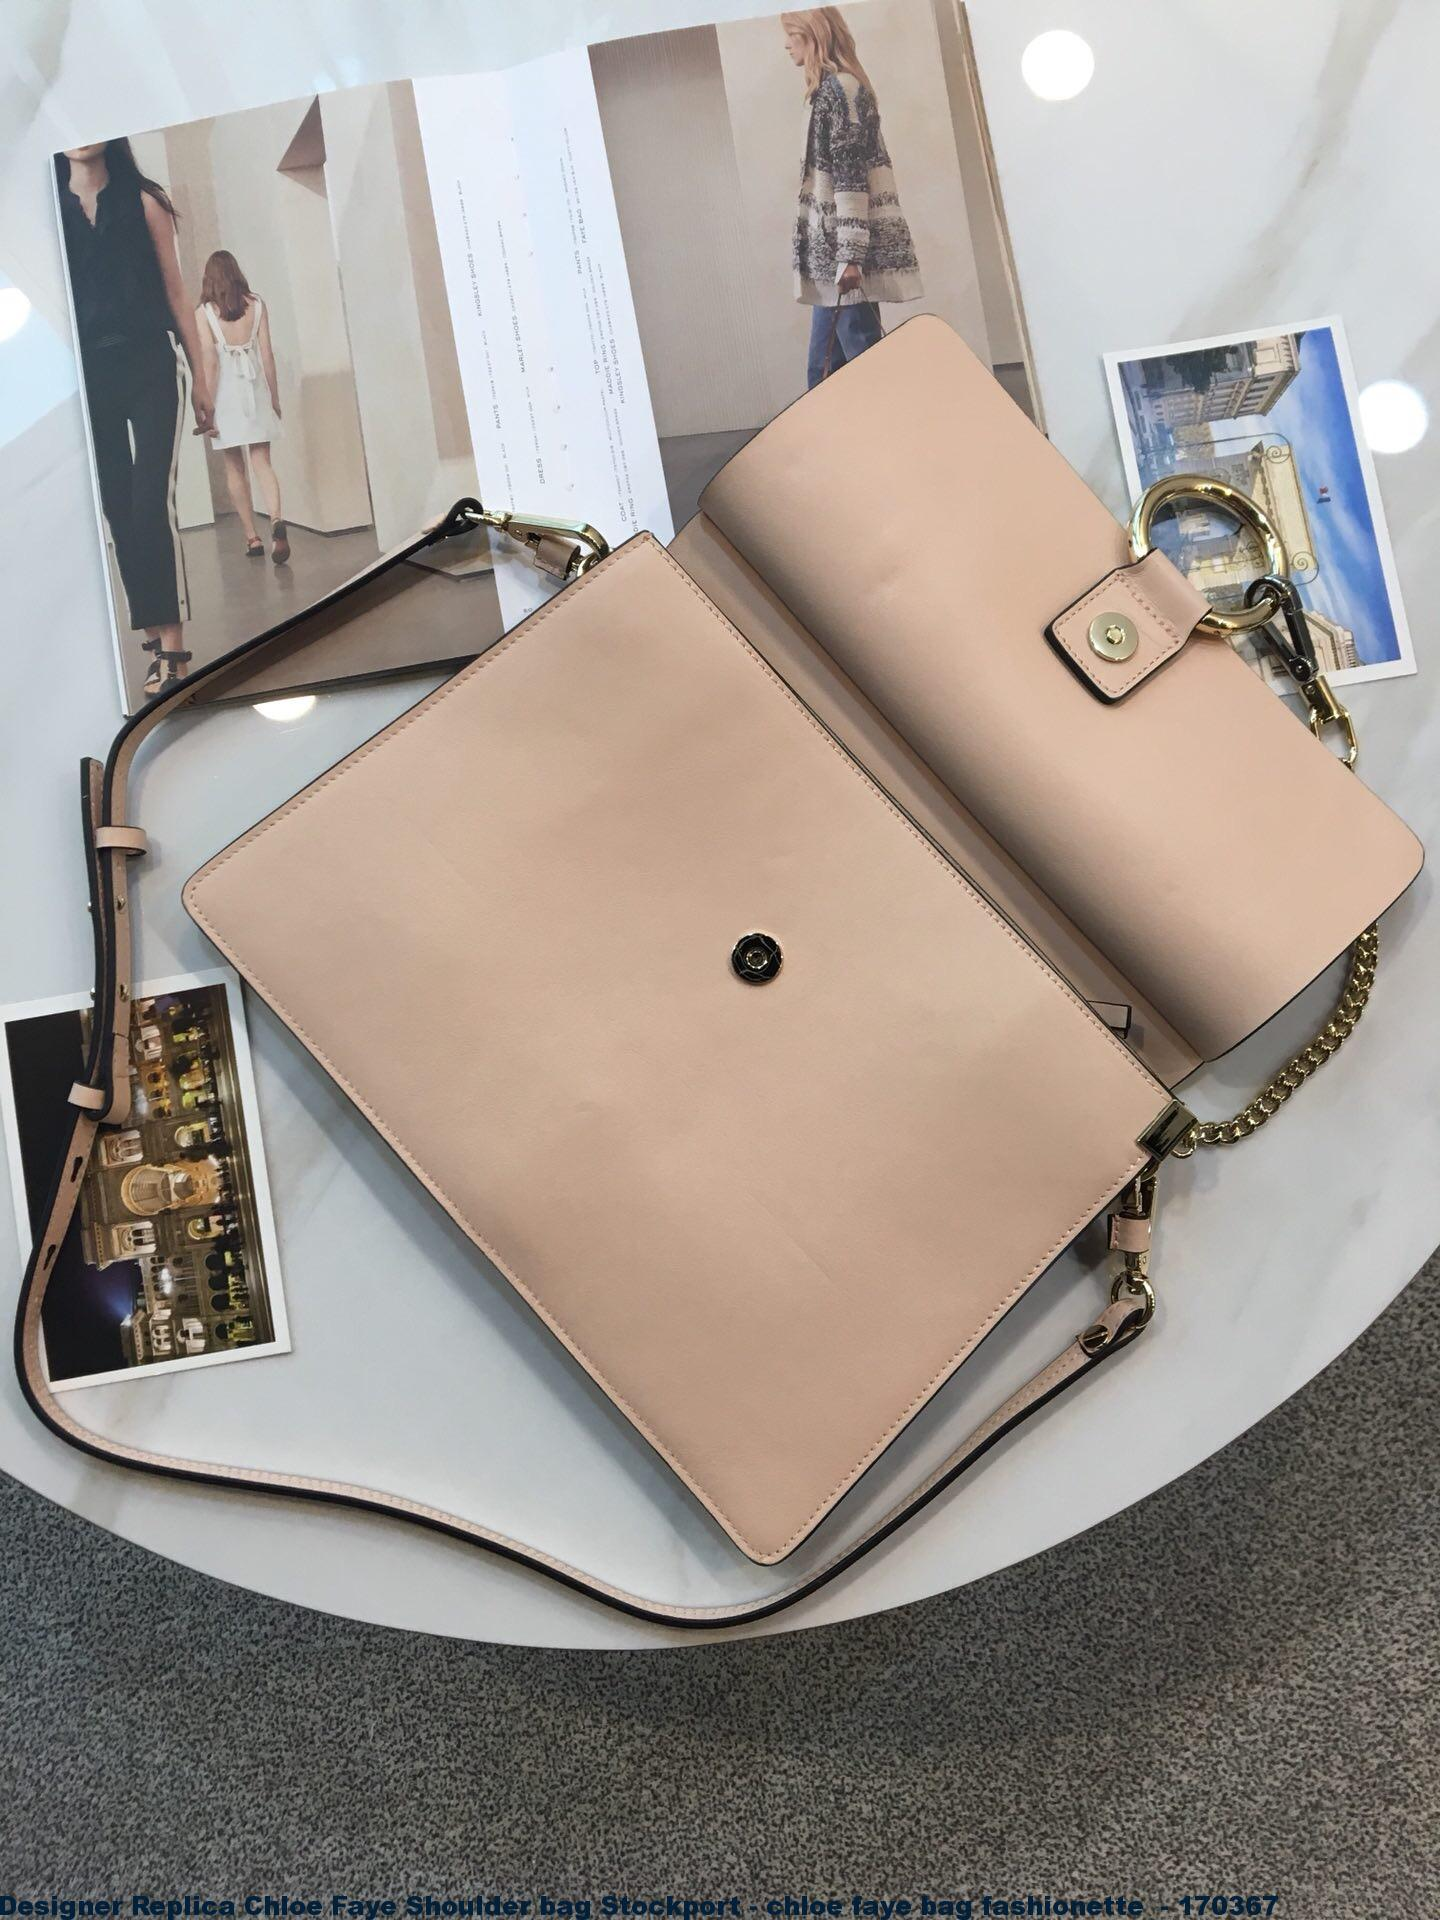 2a2a7600 Designer Replica Chloe Faye Shoulder bag Stockport - chloe faye bag  fashionette - 170367